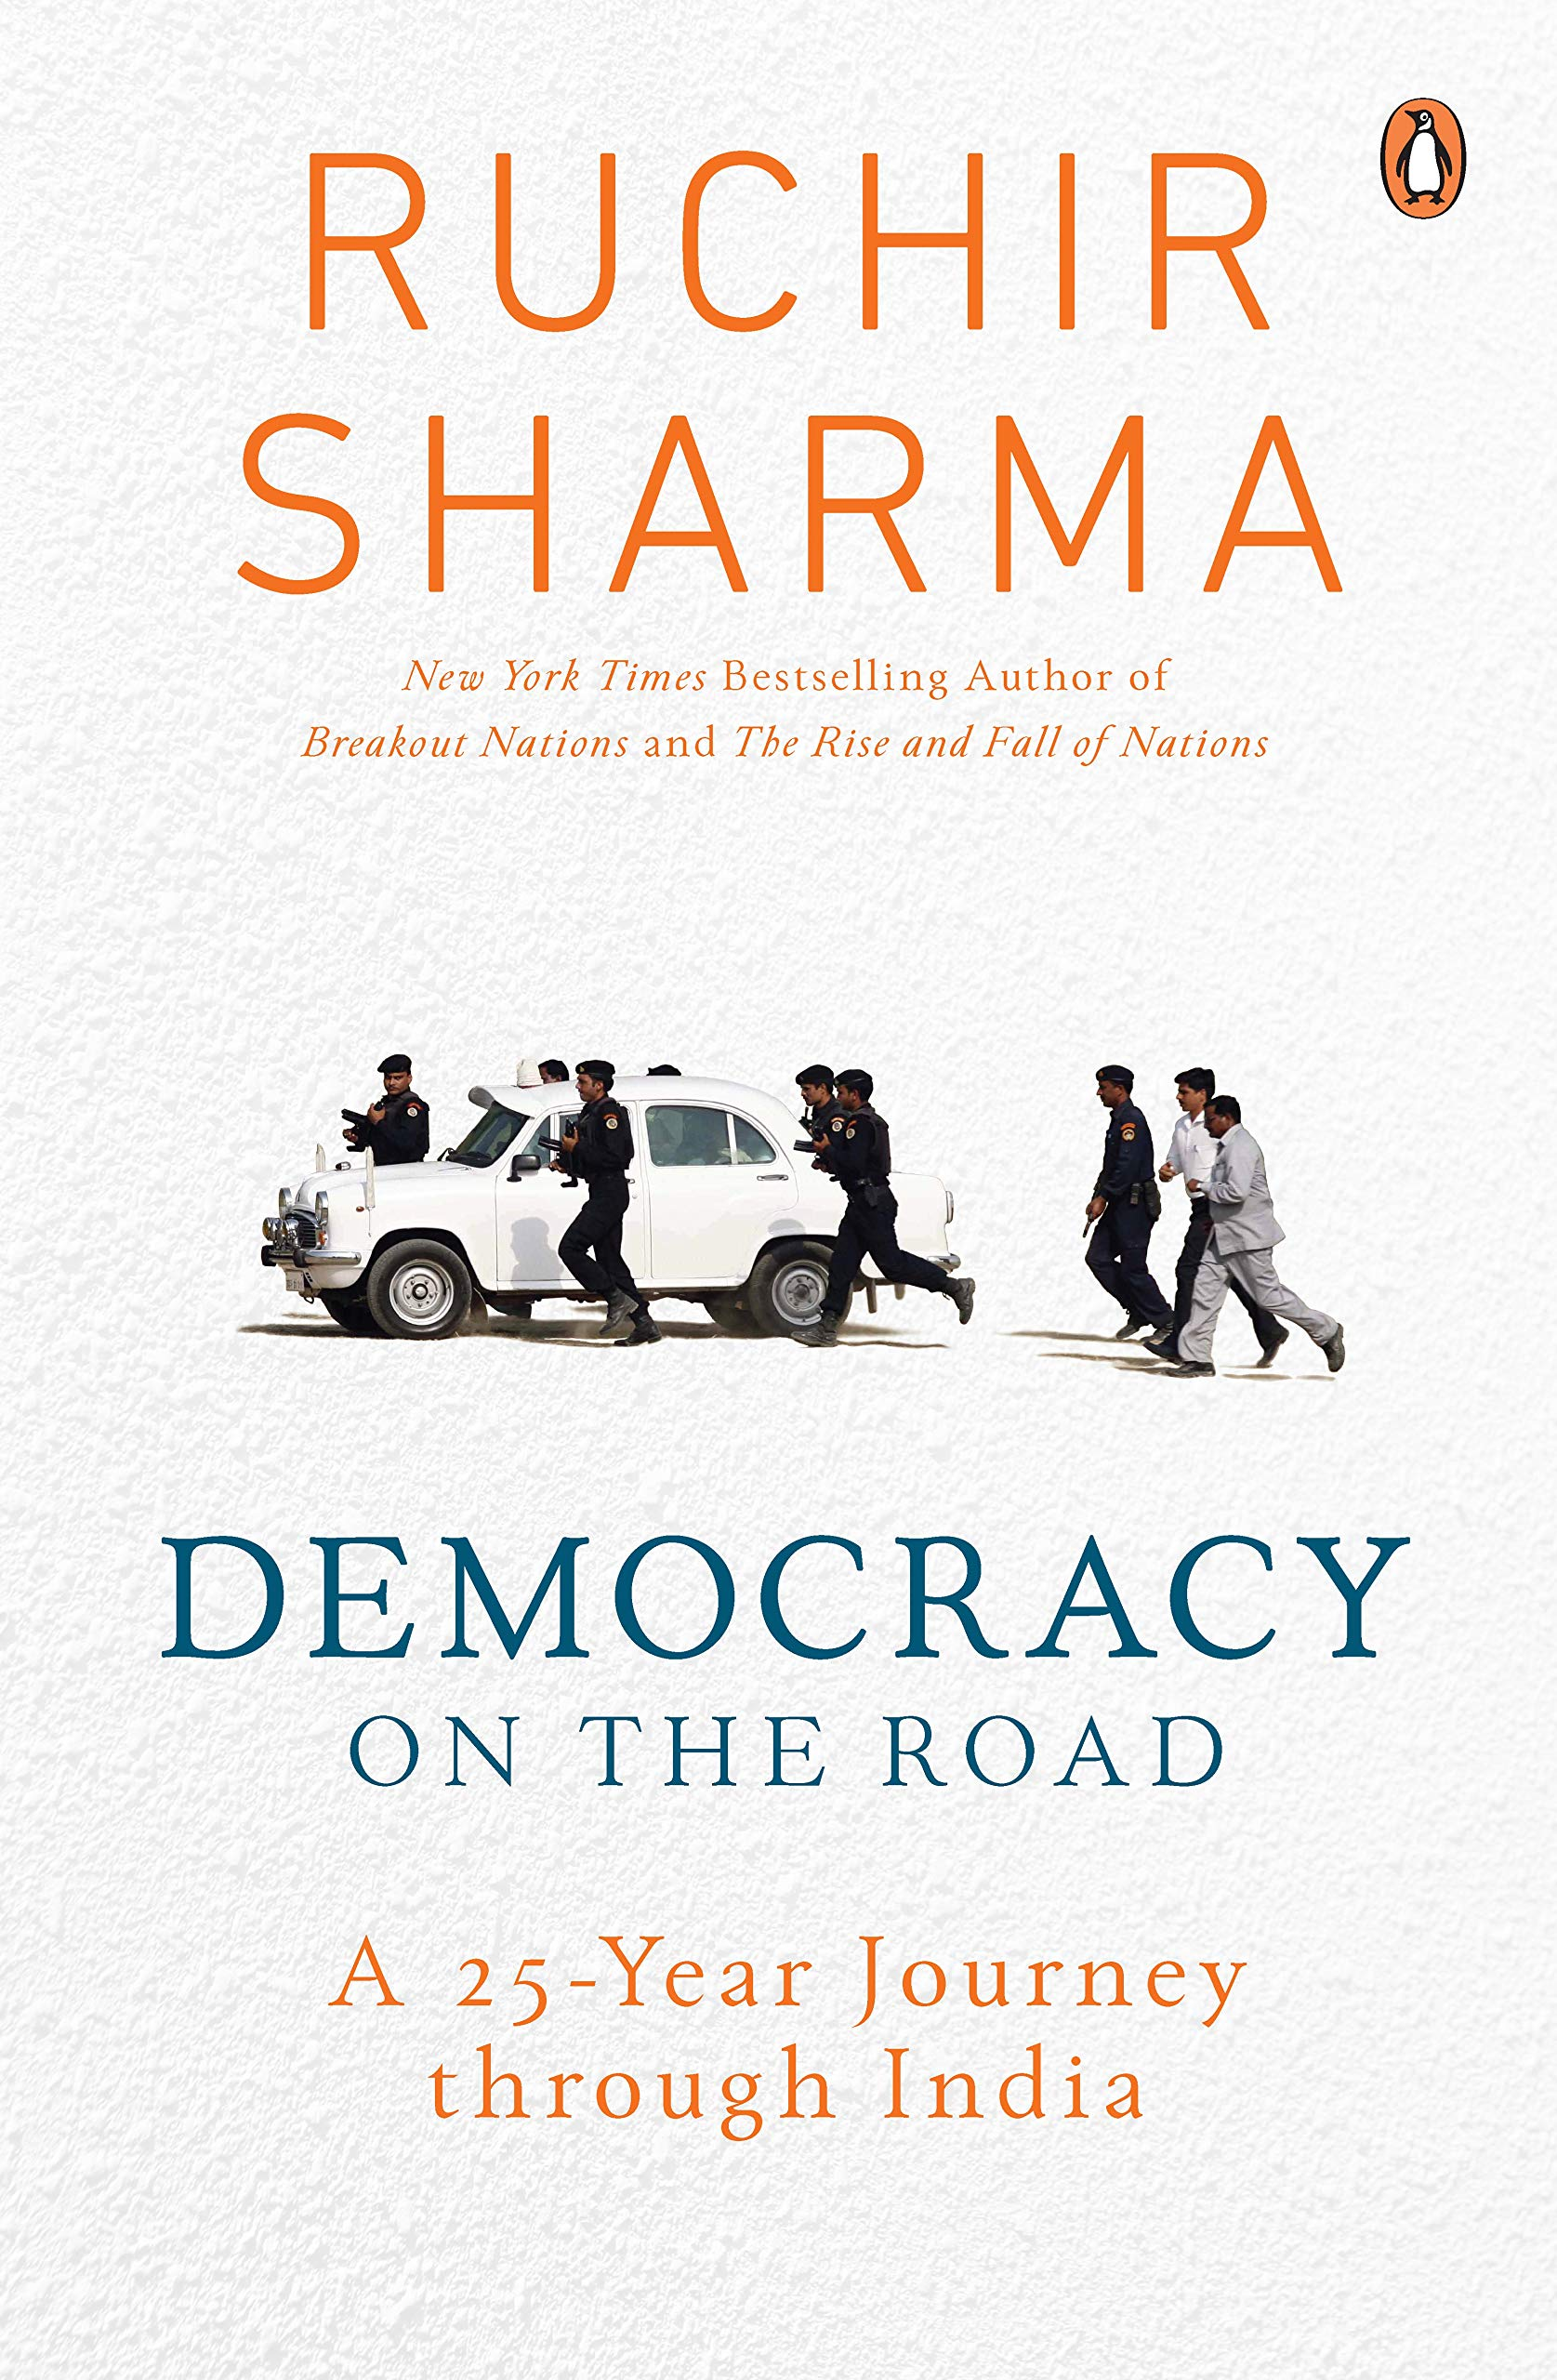 Buy Democracy on the Road: A 25 Year Journey through India Book Online at  Low Prices in India | Democracy on the Road: A 25 Year Journey through  India Reviews & Ratings - Amazon.in